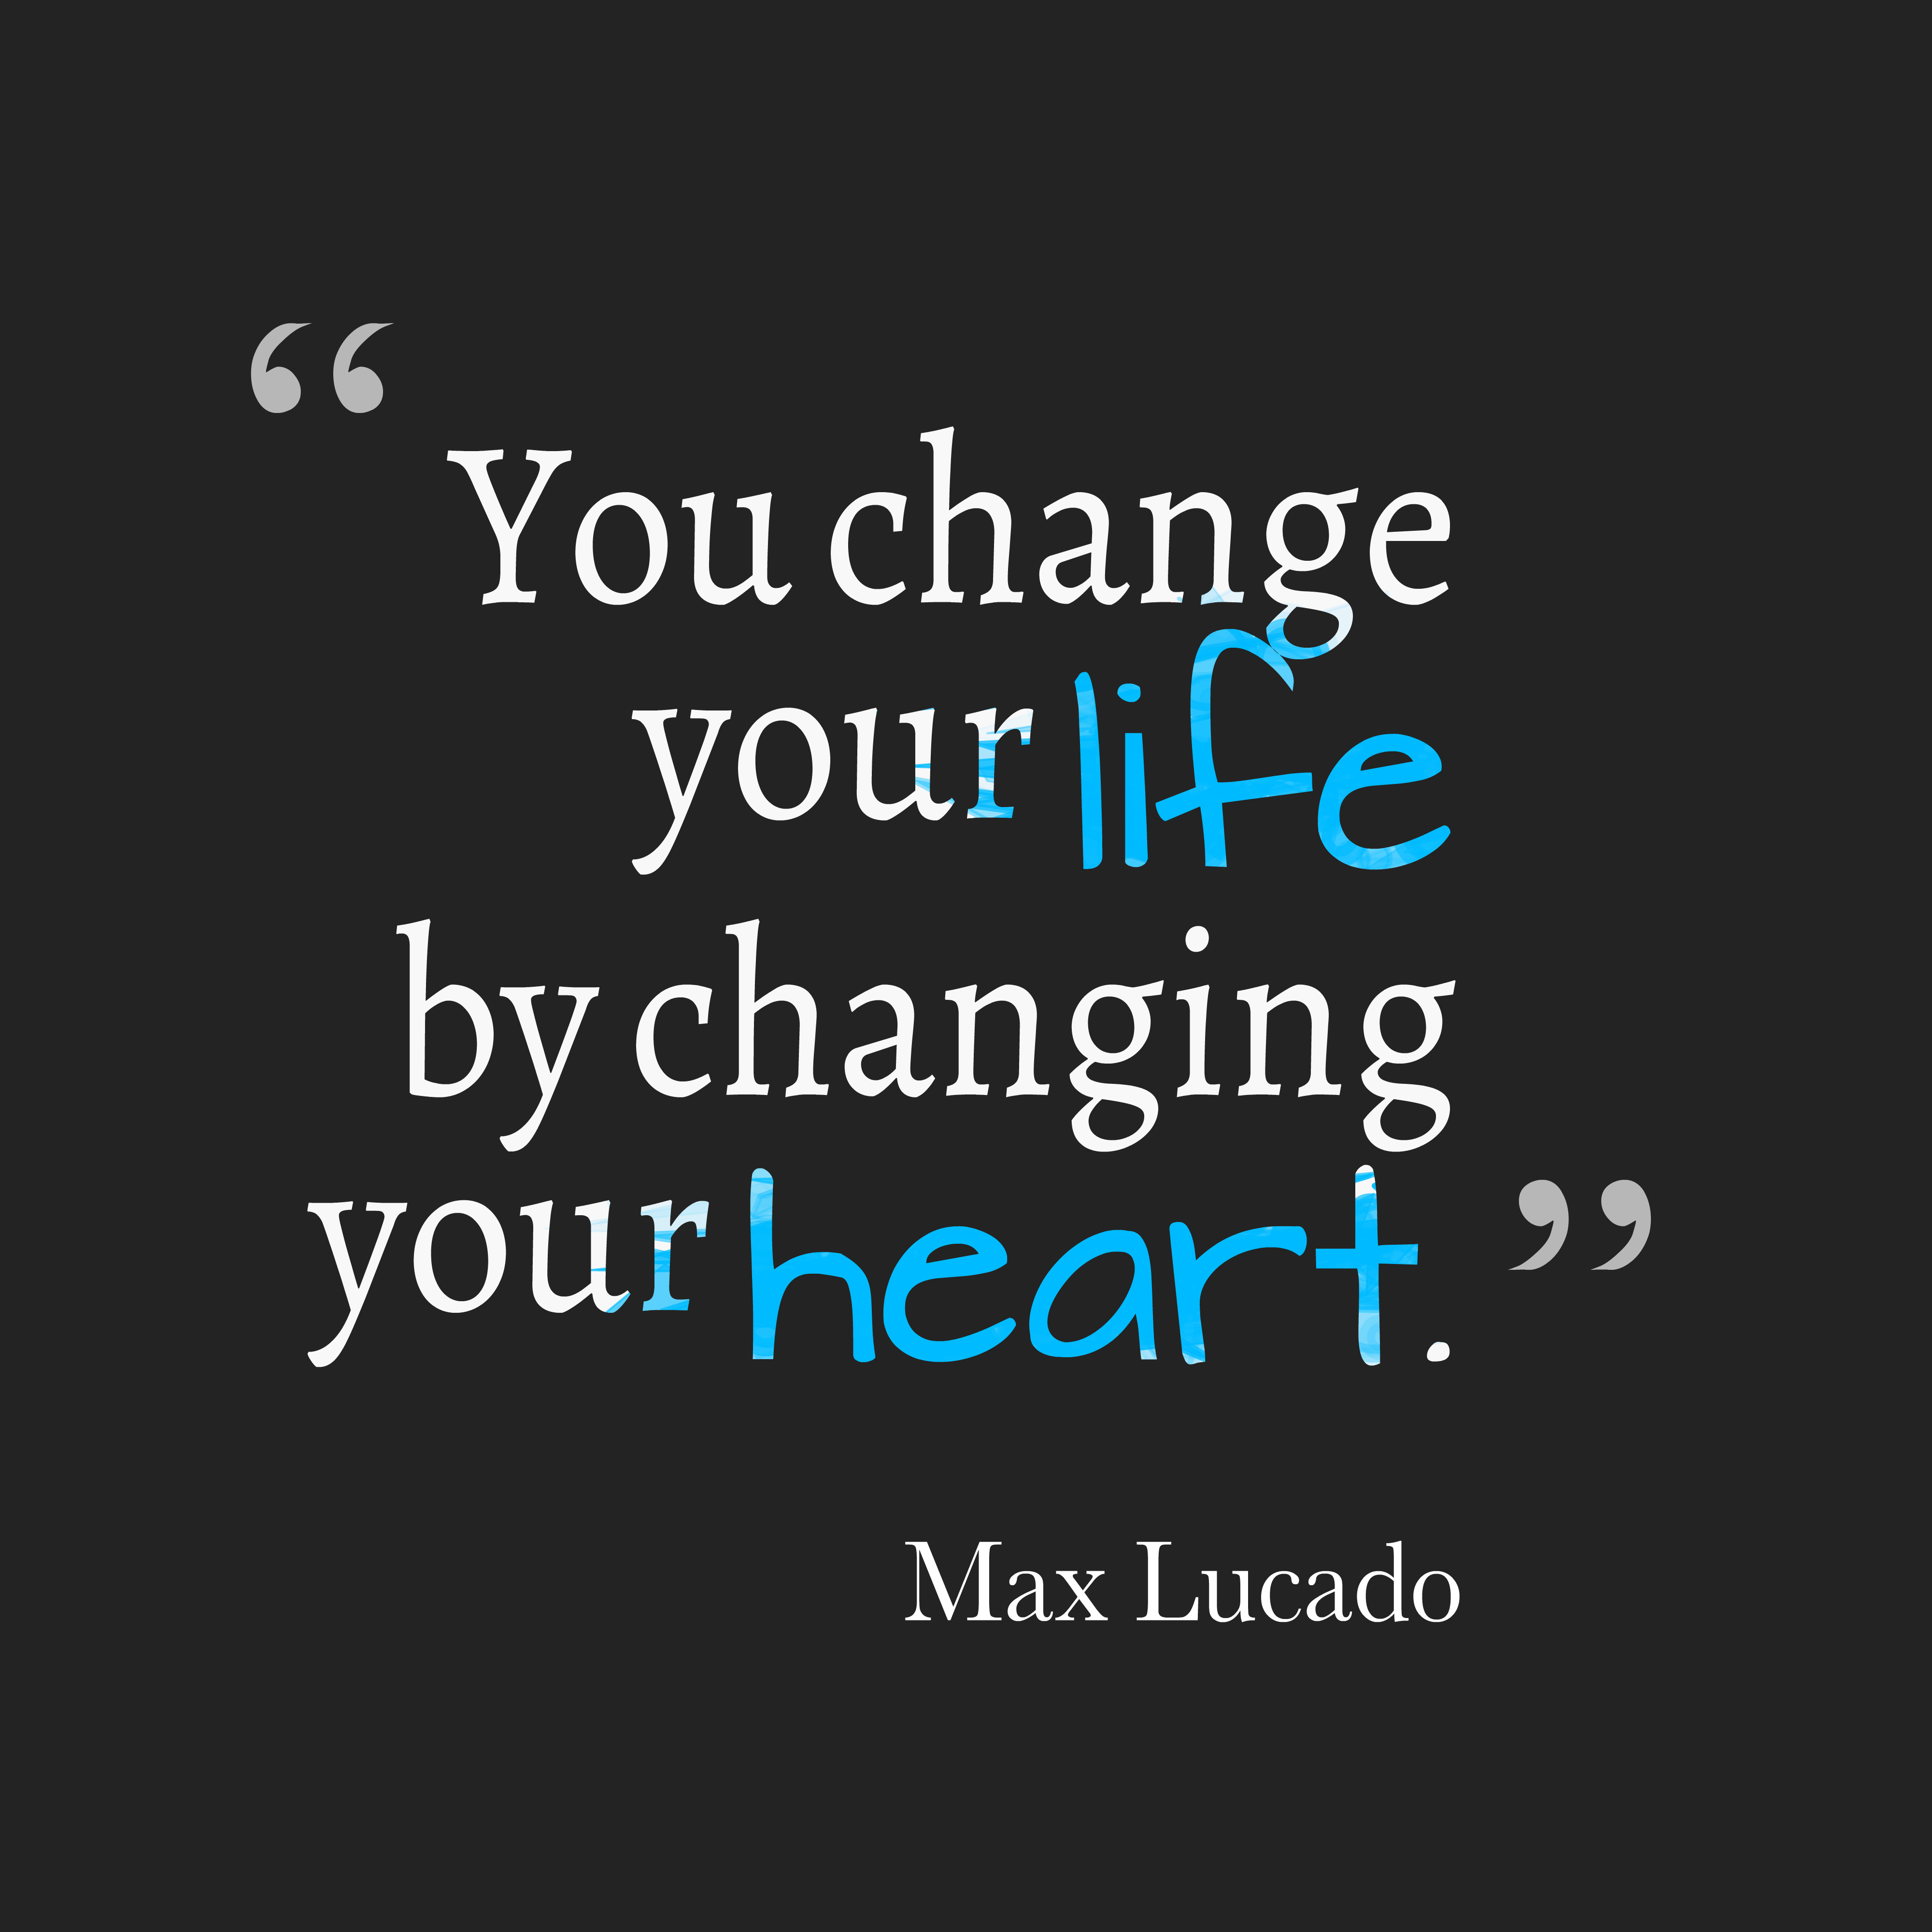 Life Changes Quotes  Get high resolution using text from Max Lucado quote about